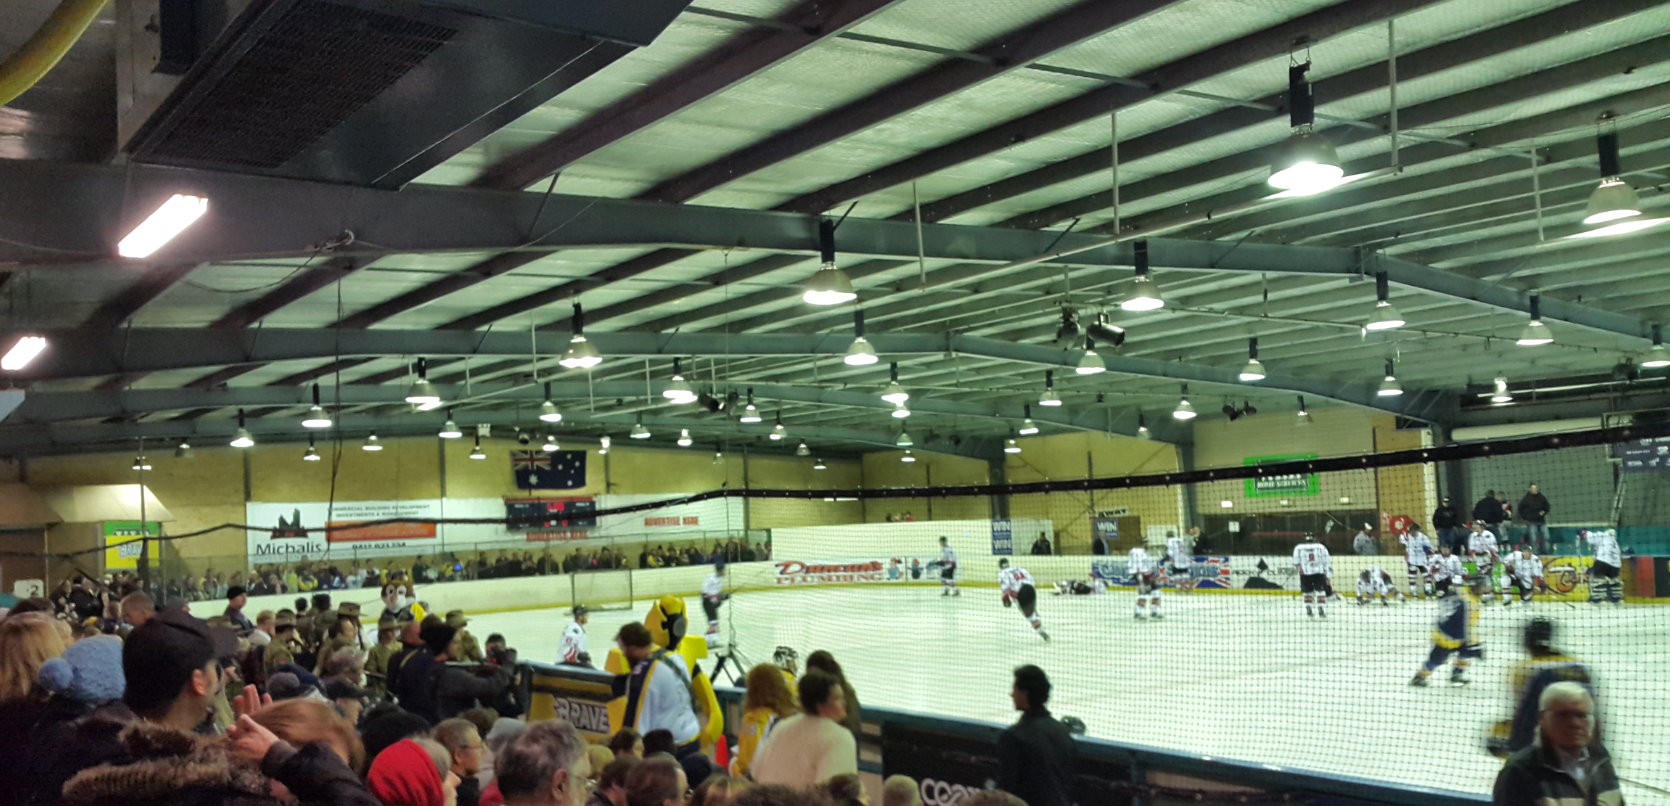 File:Phillip Ice Skating Centre Ice Rink.png.